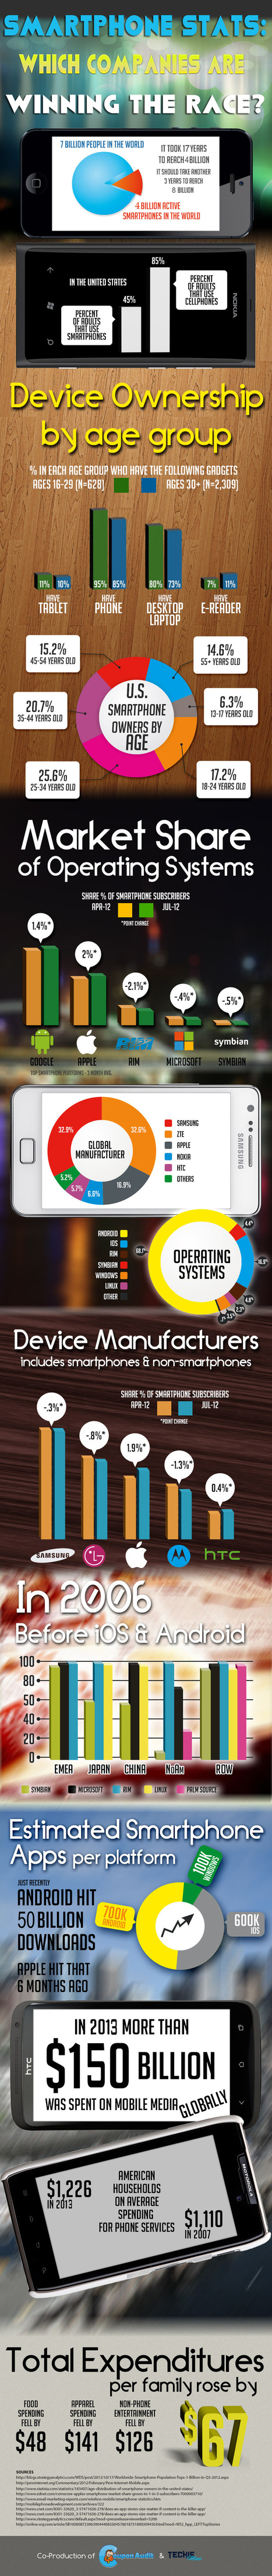 Smartphone Stats Which Companies Are Winning The Race - Techie Minx | Mobile Media Coverage | Scoop.it